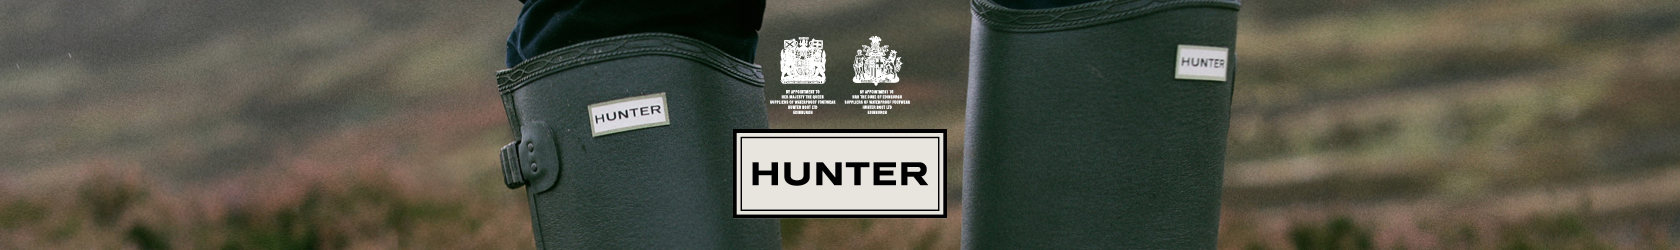 Green Hunter wellies in the outdoors with the Hunter logo in the middle.